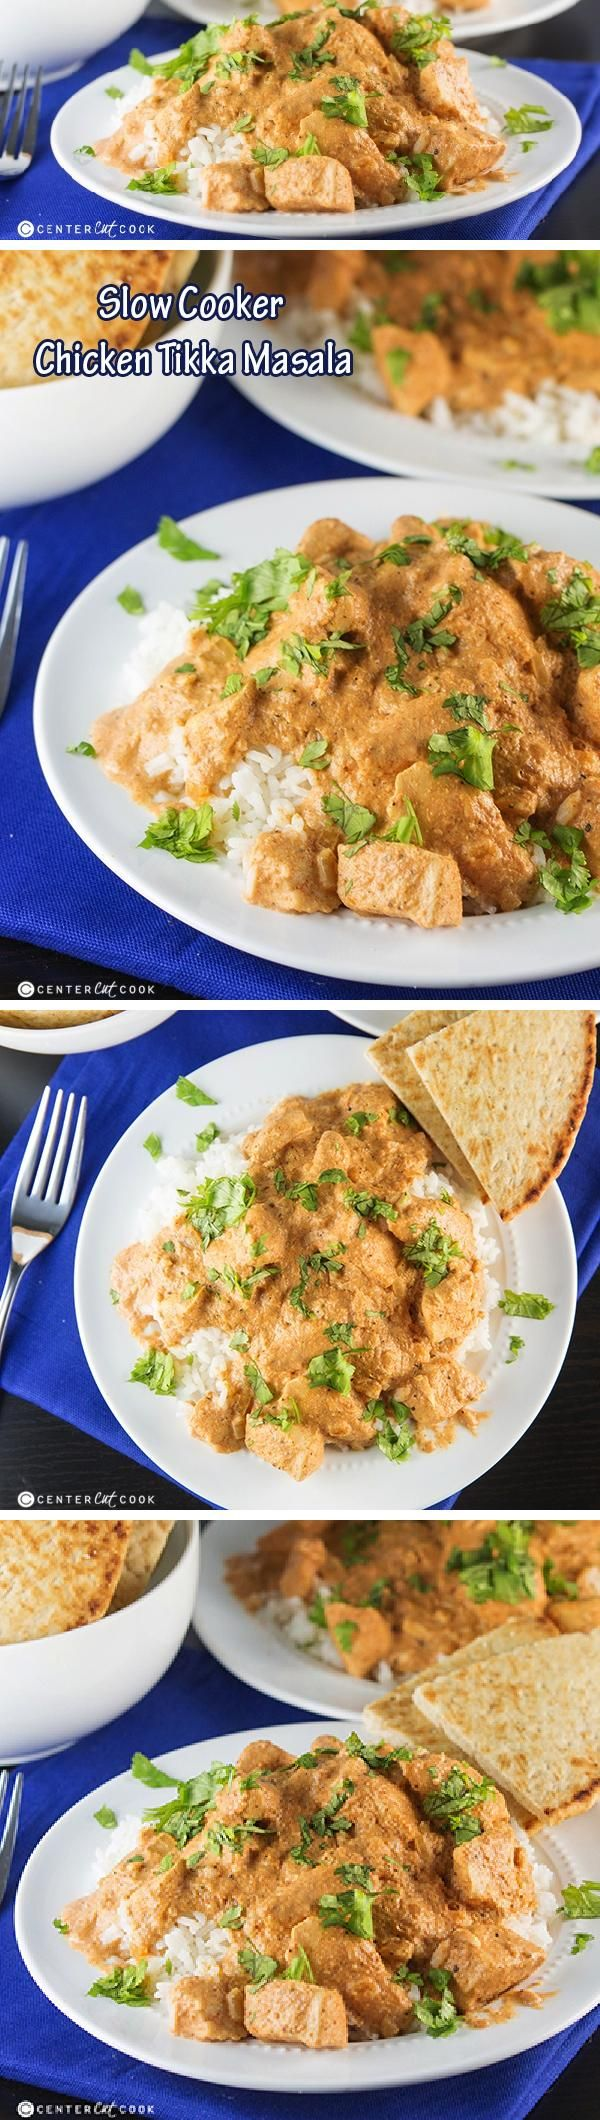 SLOW COOKER Chicken TIKKA MASALA with chunks of chicken in a spicy, creamy sauce made right in the crock pot! Typically a popular dish found in Indian restaurants, this is an easy recipe that requires very minimal effort and tastes delicious!